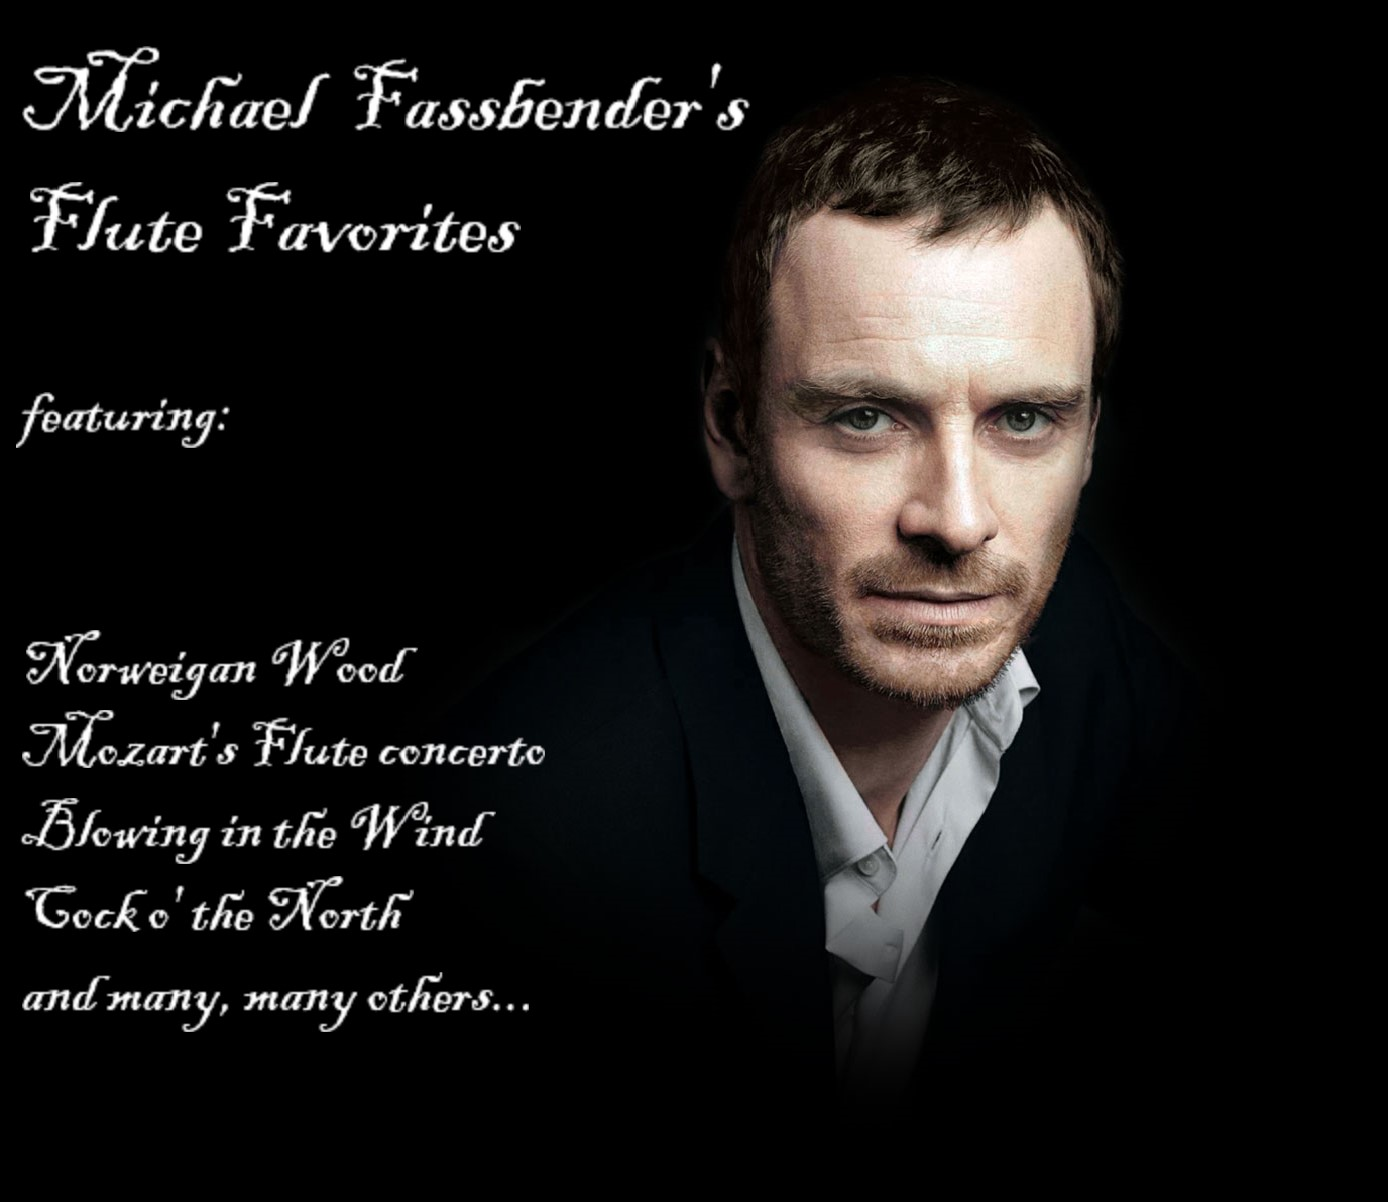 MICHAEL FASSBENDER'S FLUTE ALBUM A MASSIVE HIT IN GERMANY